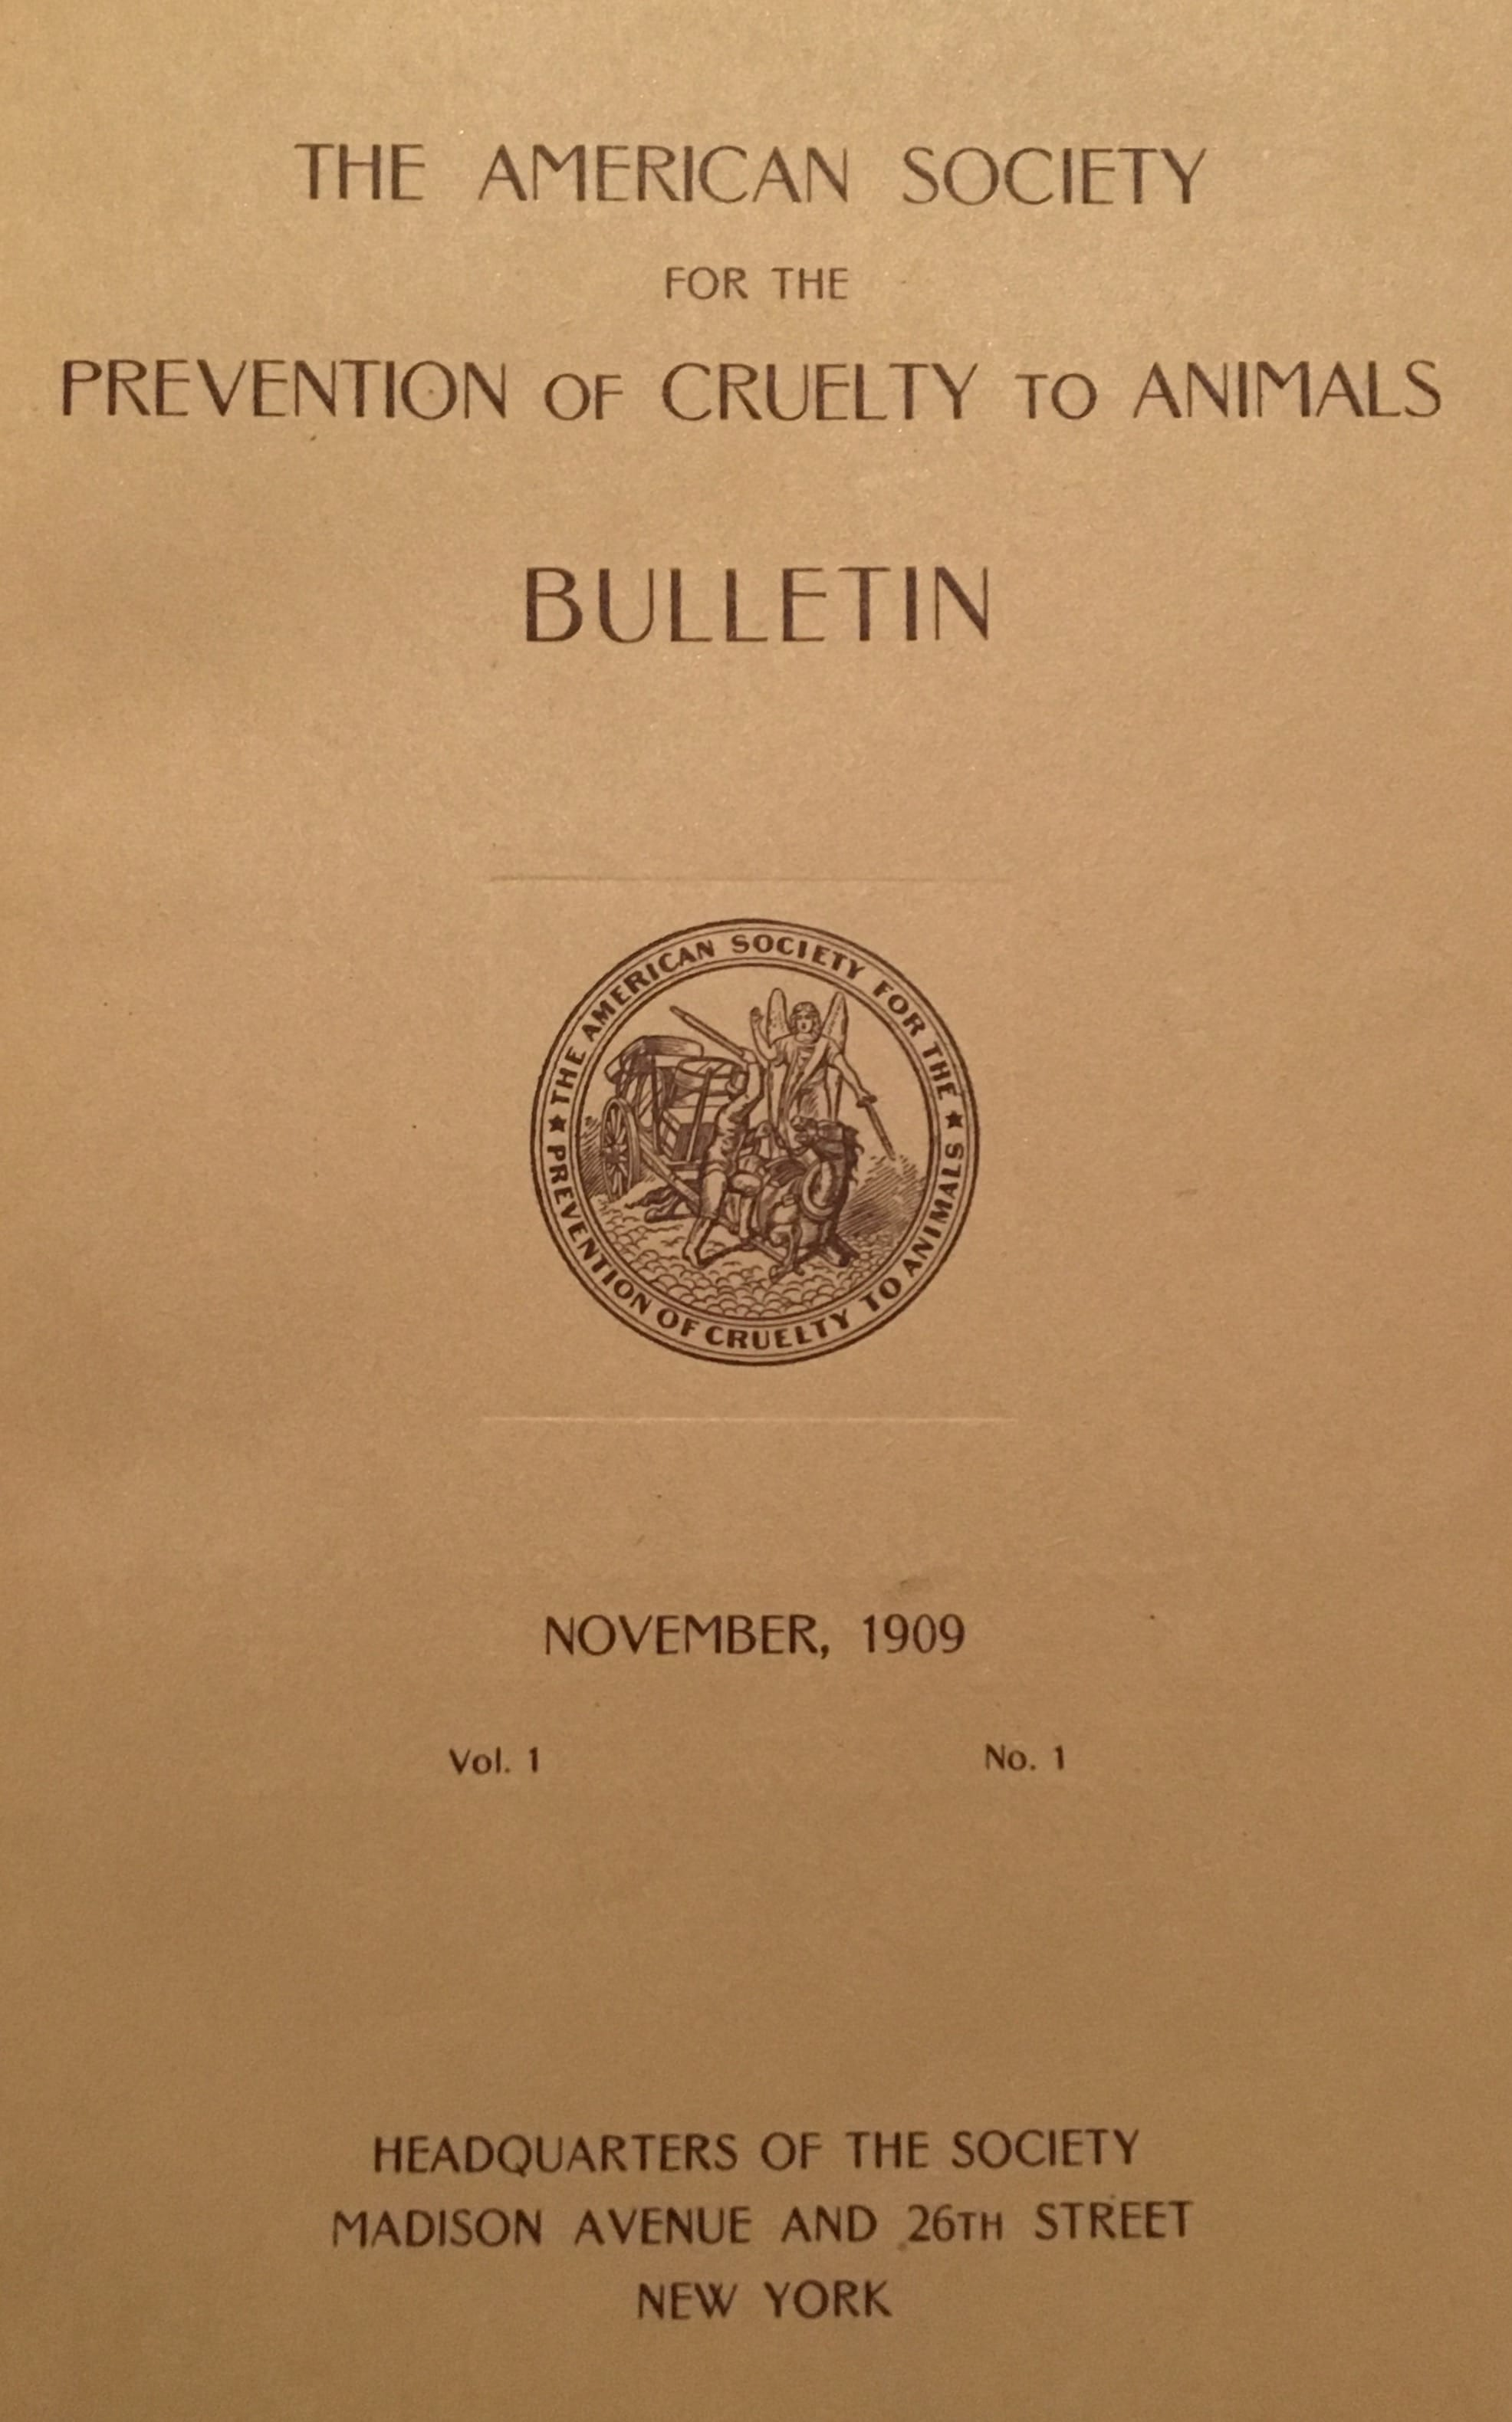 American Society for the Prevention of Cruelty to Animals Bulletin